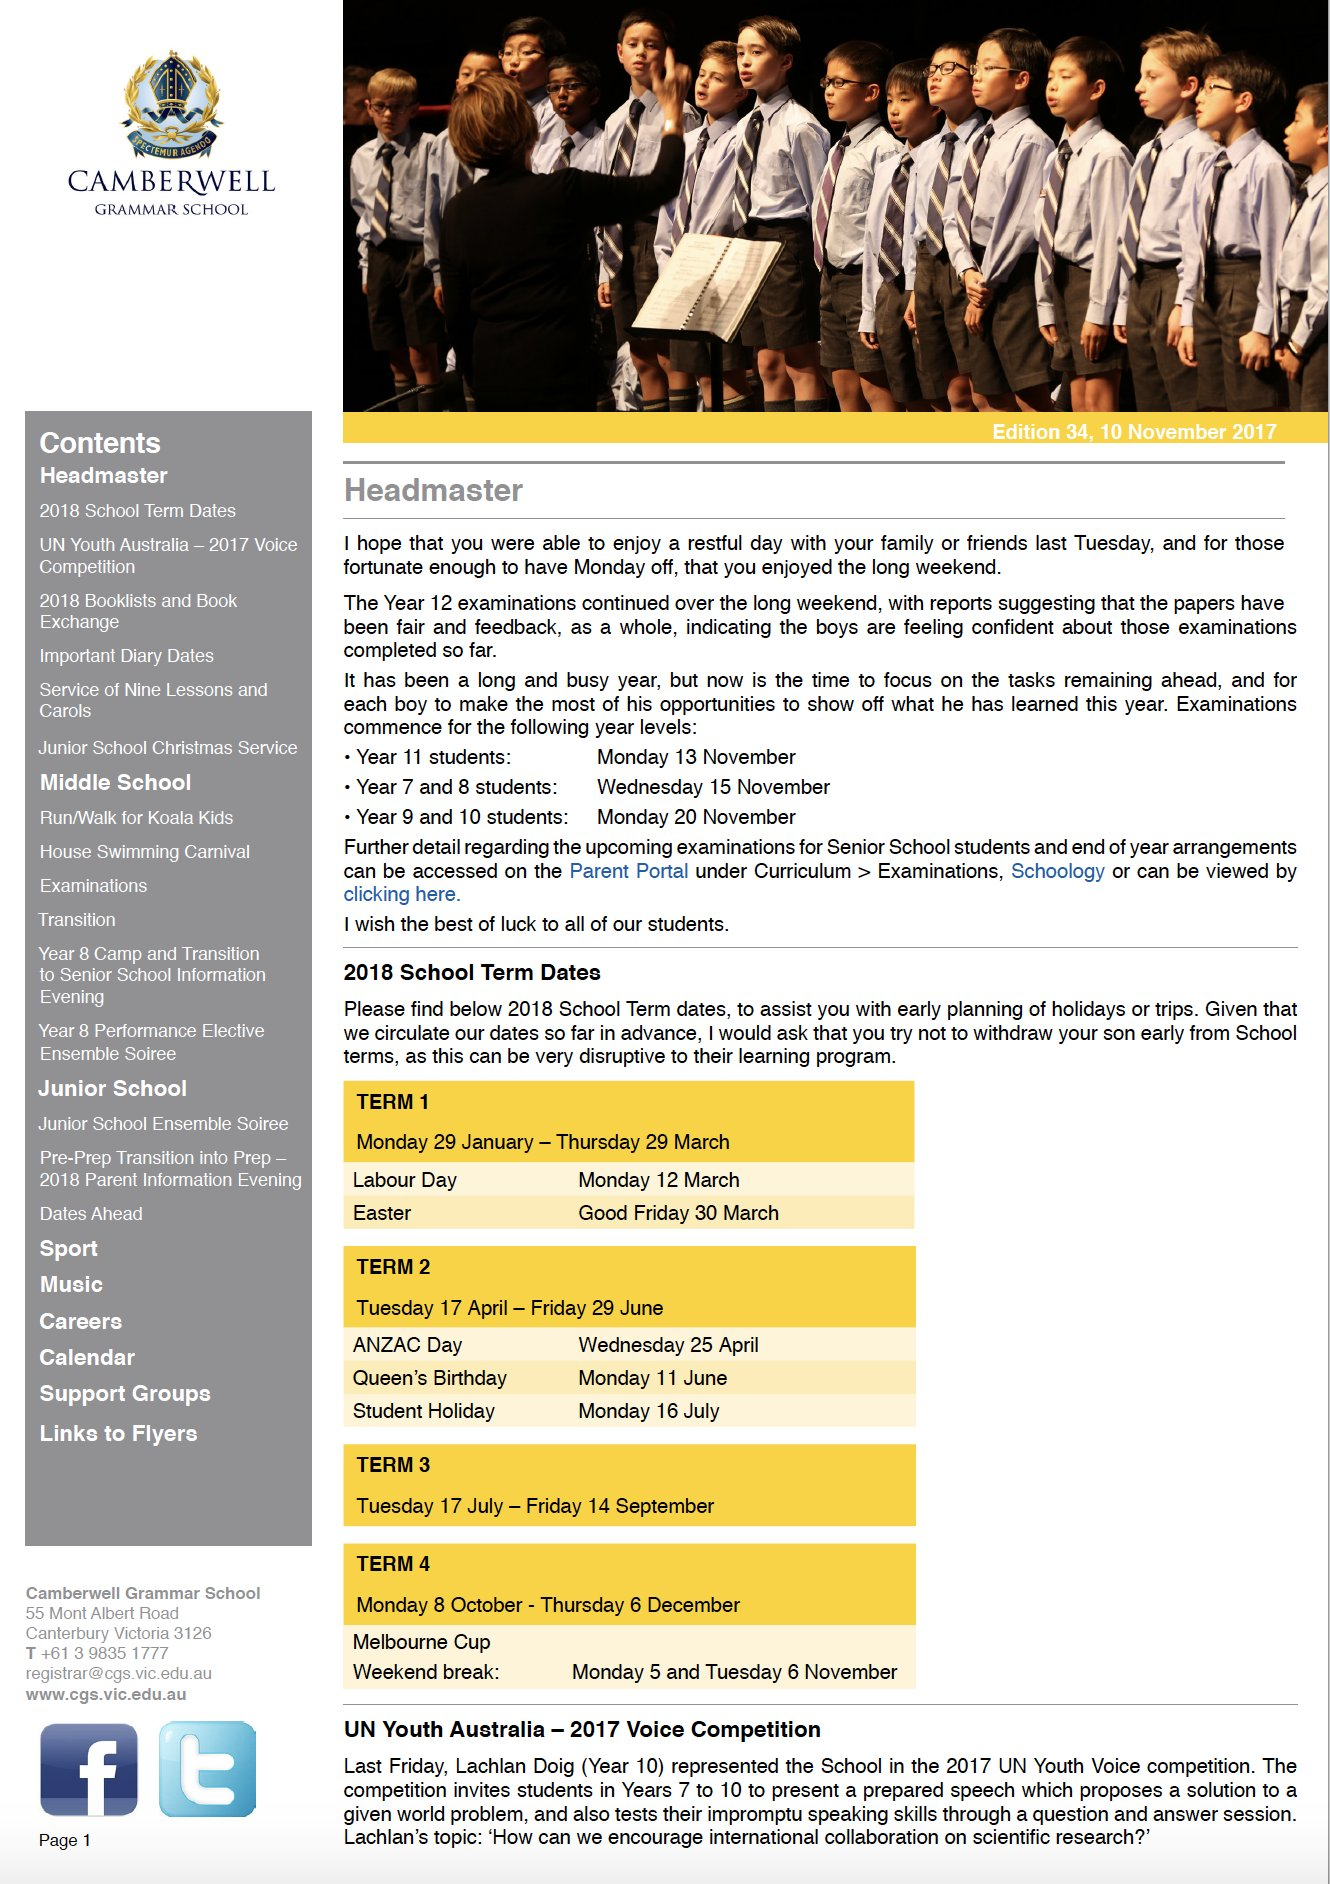 Camberwell Grammar School On Twitter Our Weekly Bulletin Is Now Available Website Tco IHRT70VycA